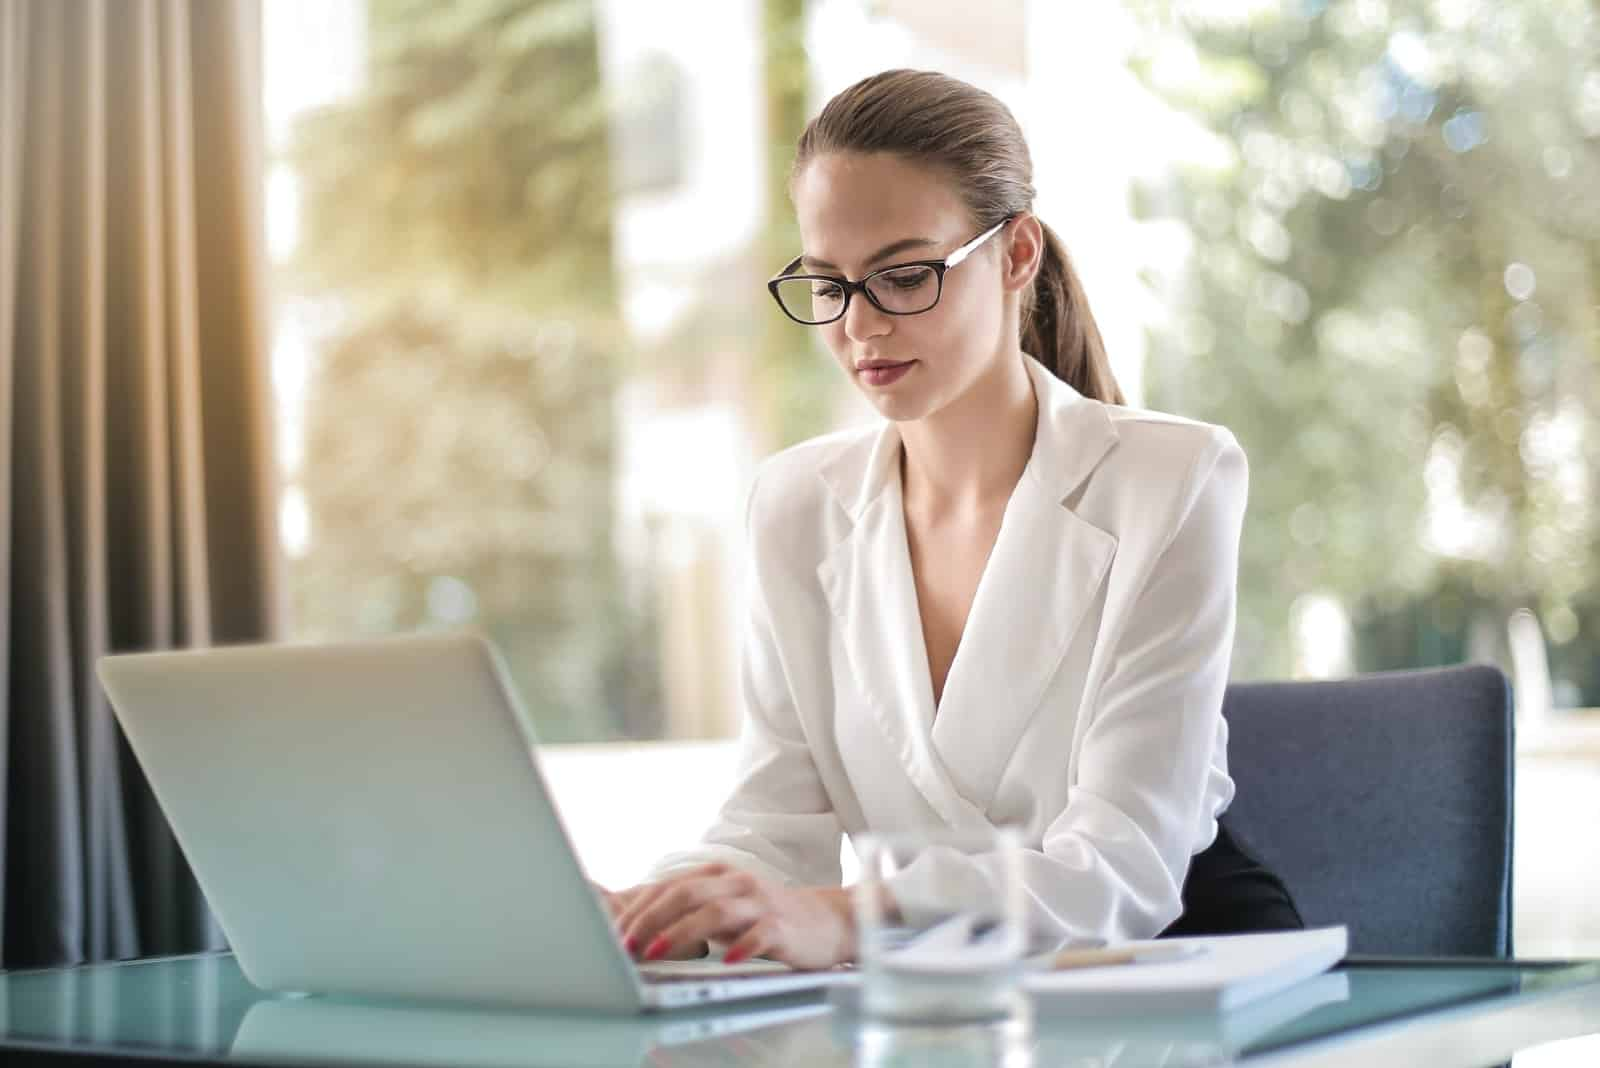 woman in white blouse using laptop while sitting at table